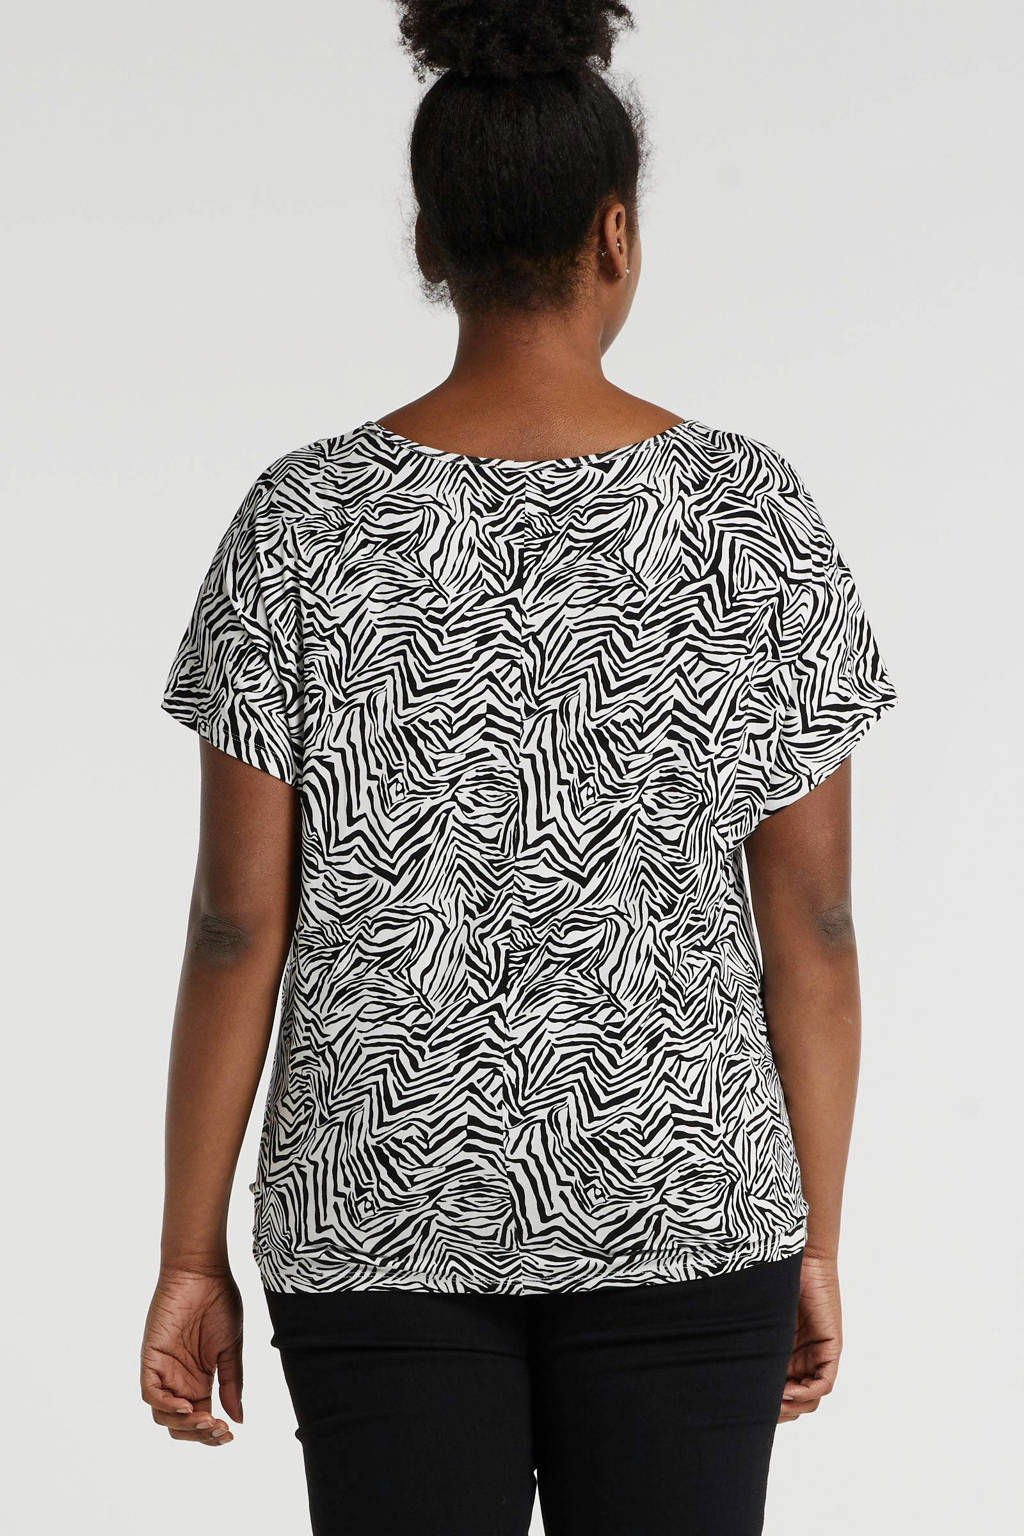 anytime Plus size top met knoop detail zebraprint zwart/ecru, Zwart/ecru